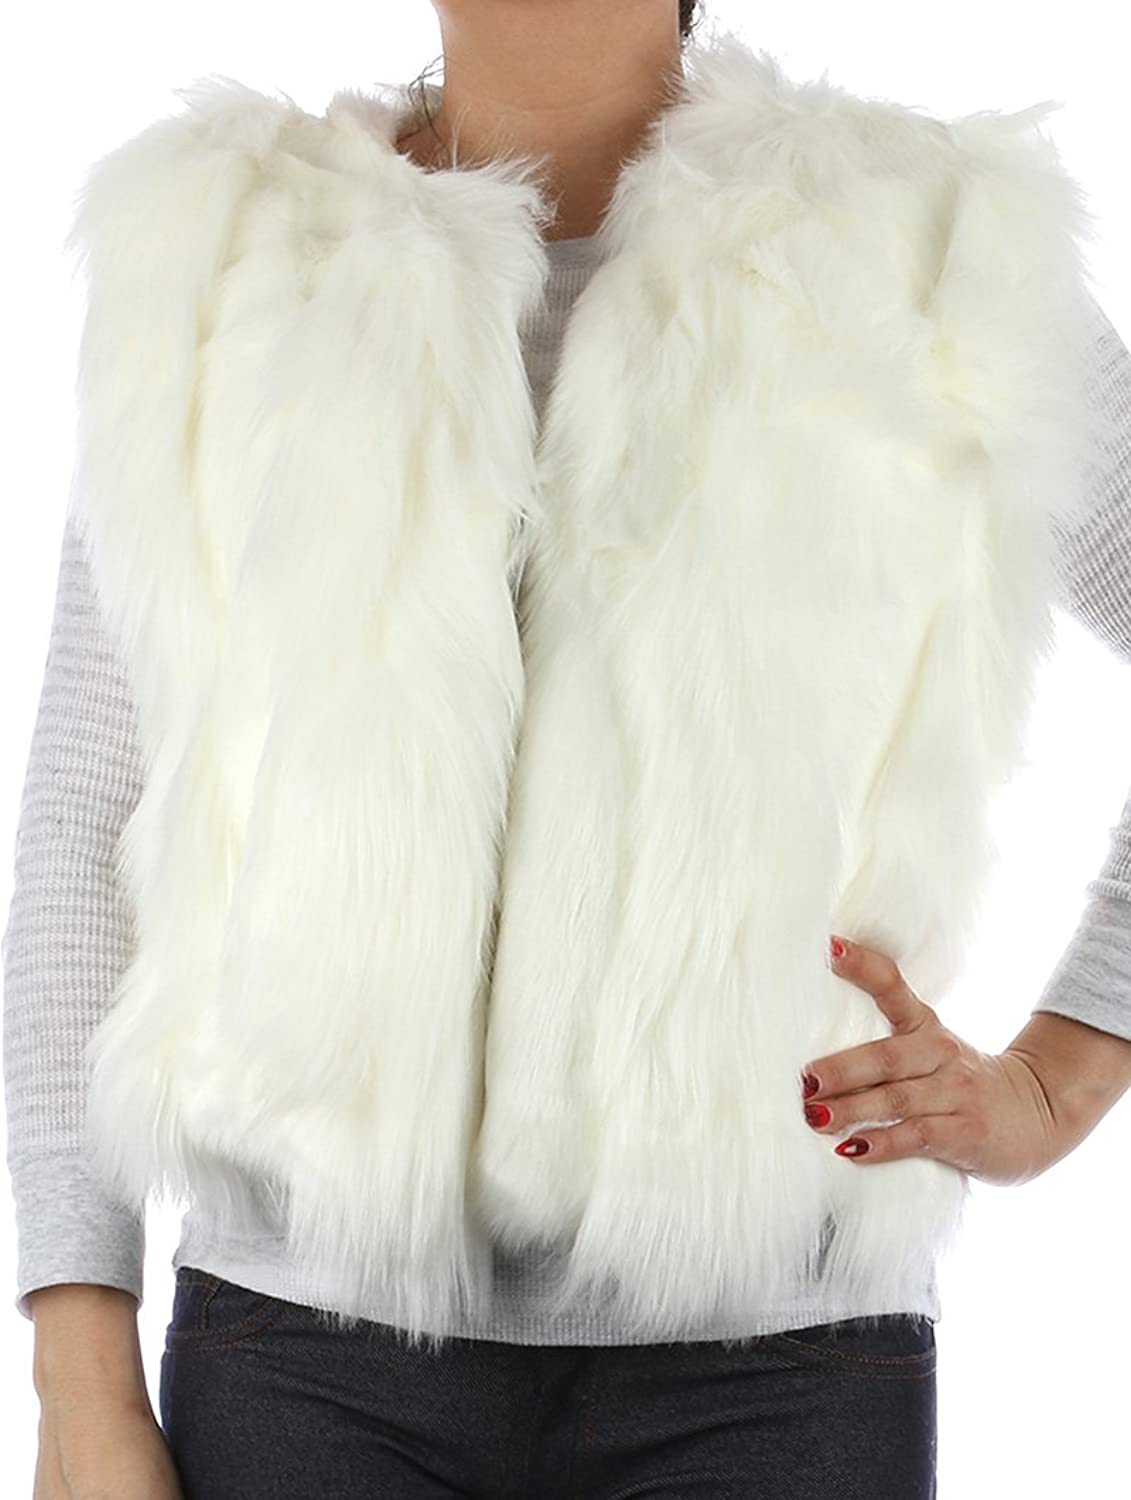 Parisian Chic Scarf Russian Style Ribbed Soft Fur Vest Single Hook Closure X Acrylic Medium White